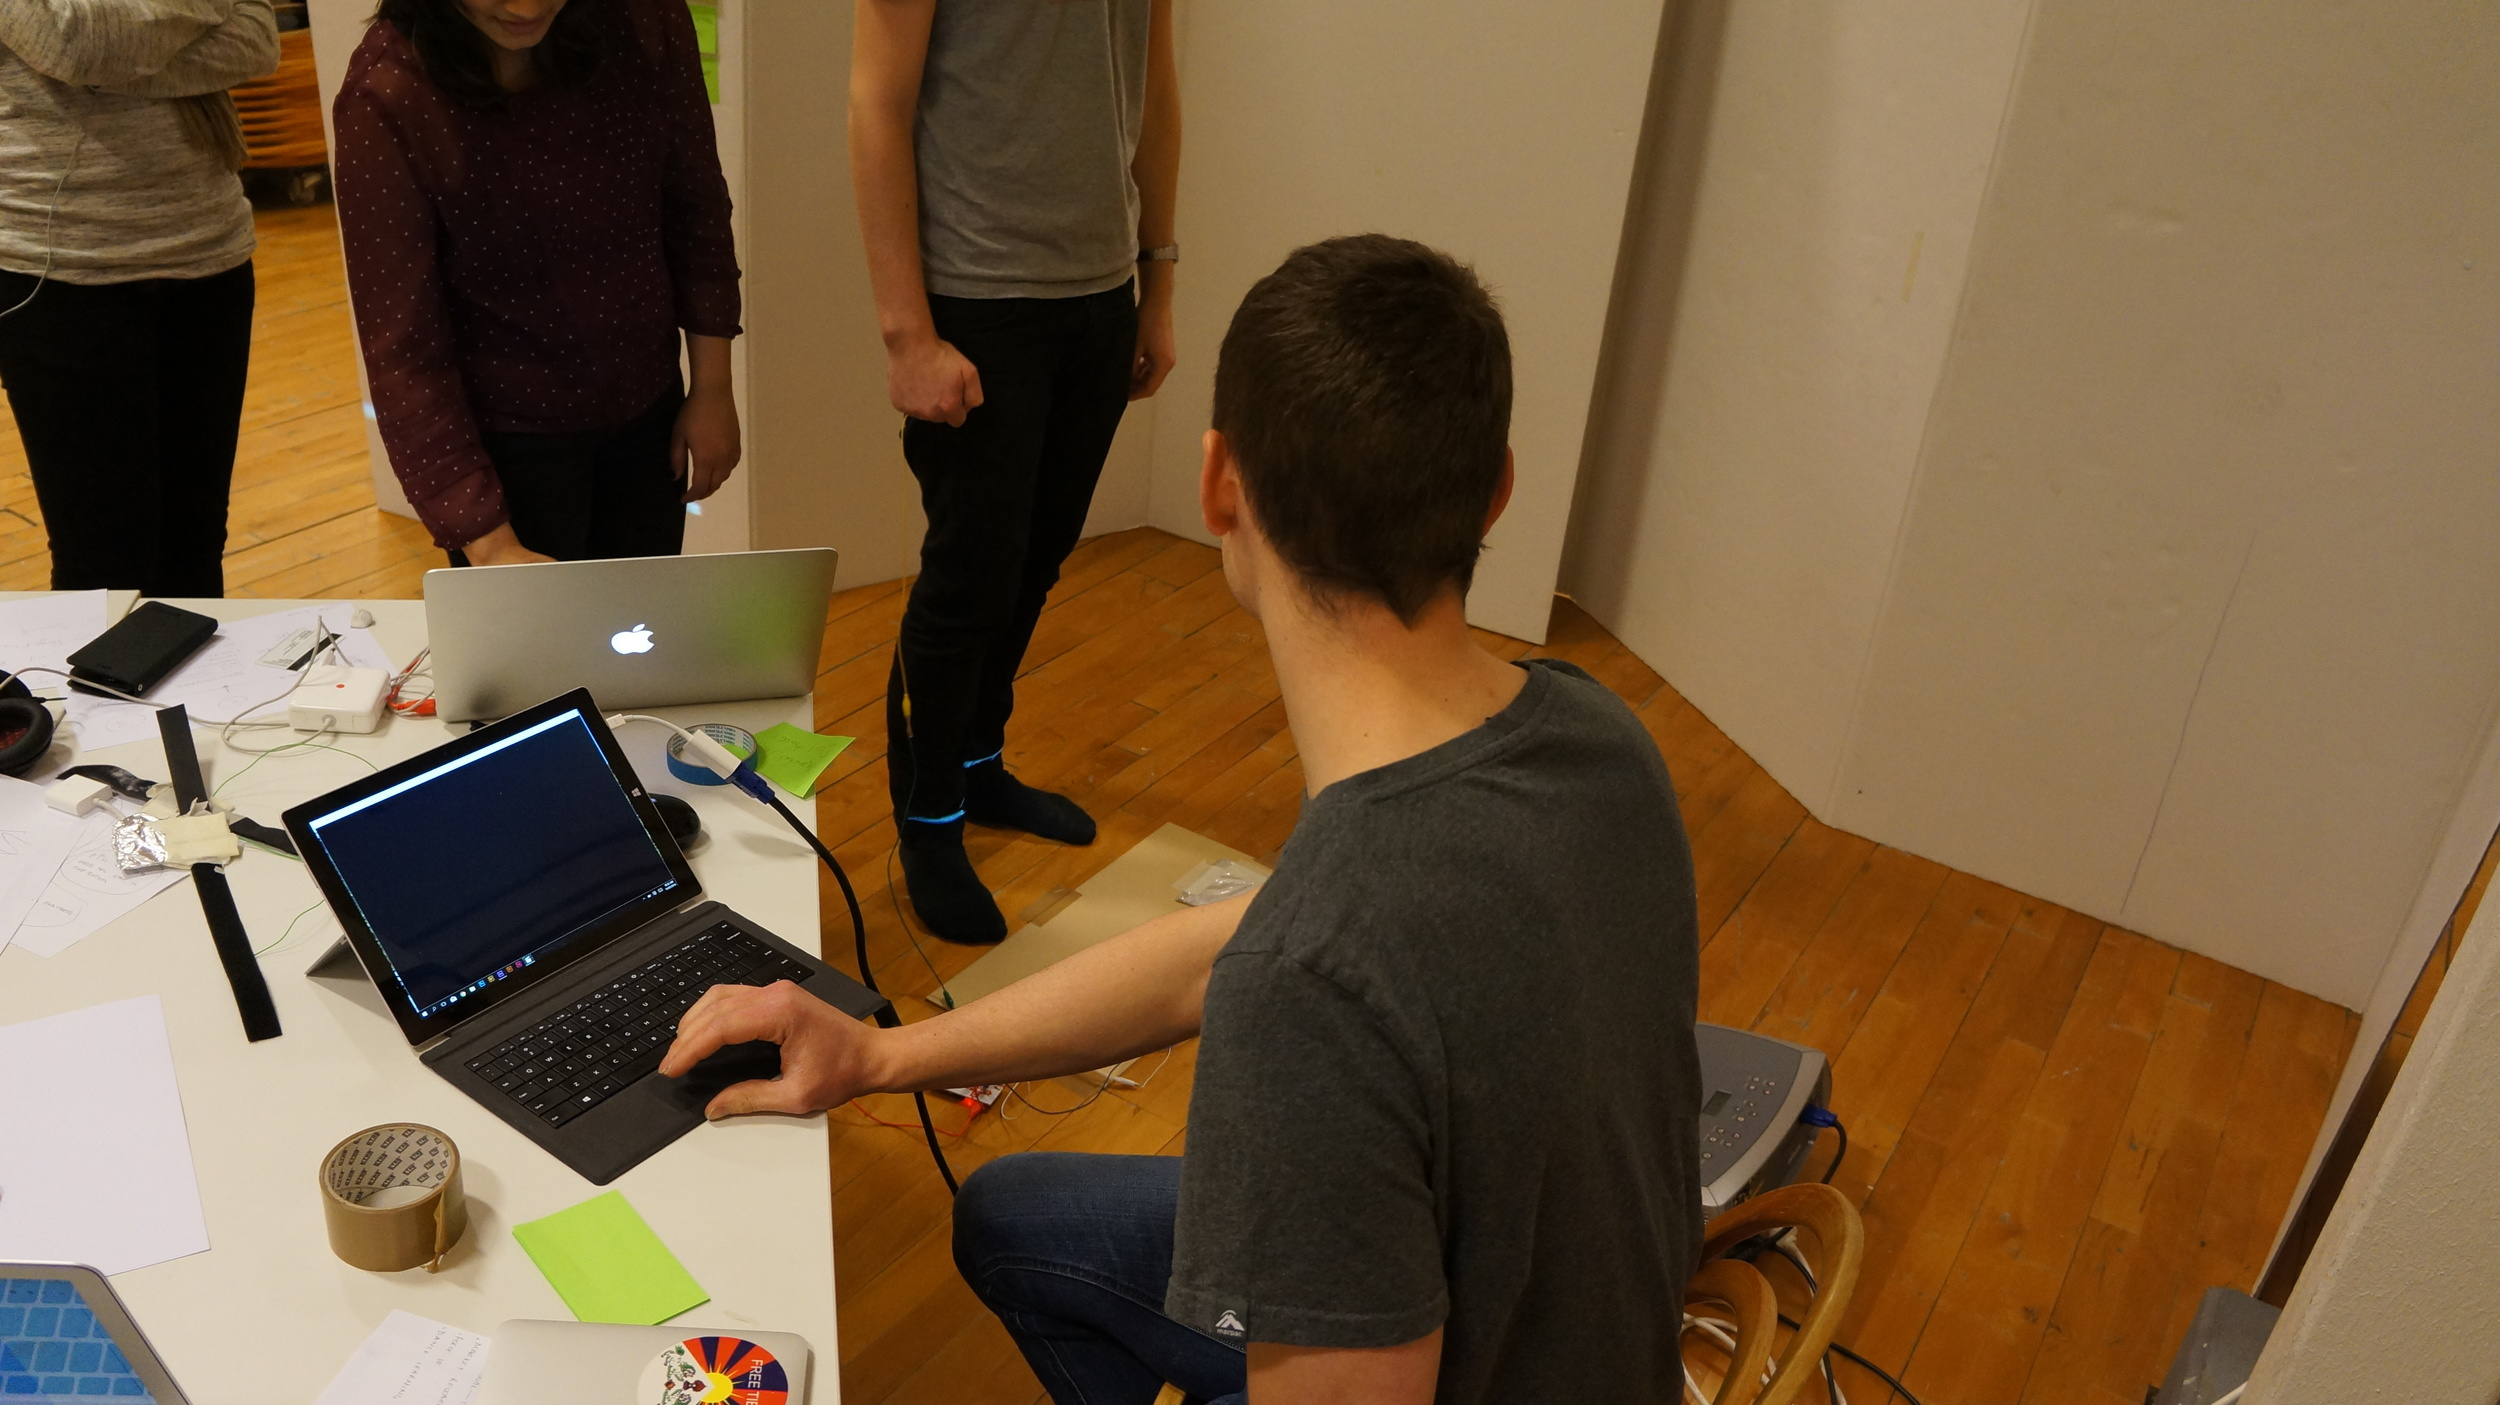 User testing with professional dancer  to see how they react to prototypes